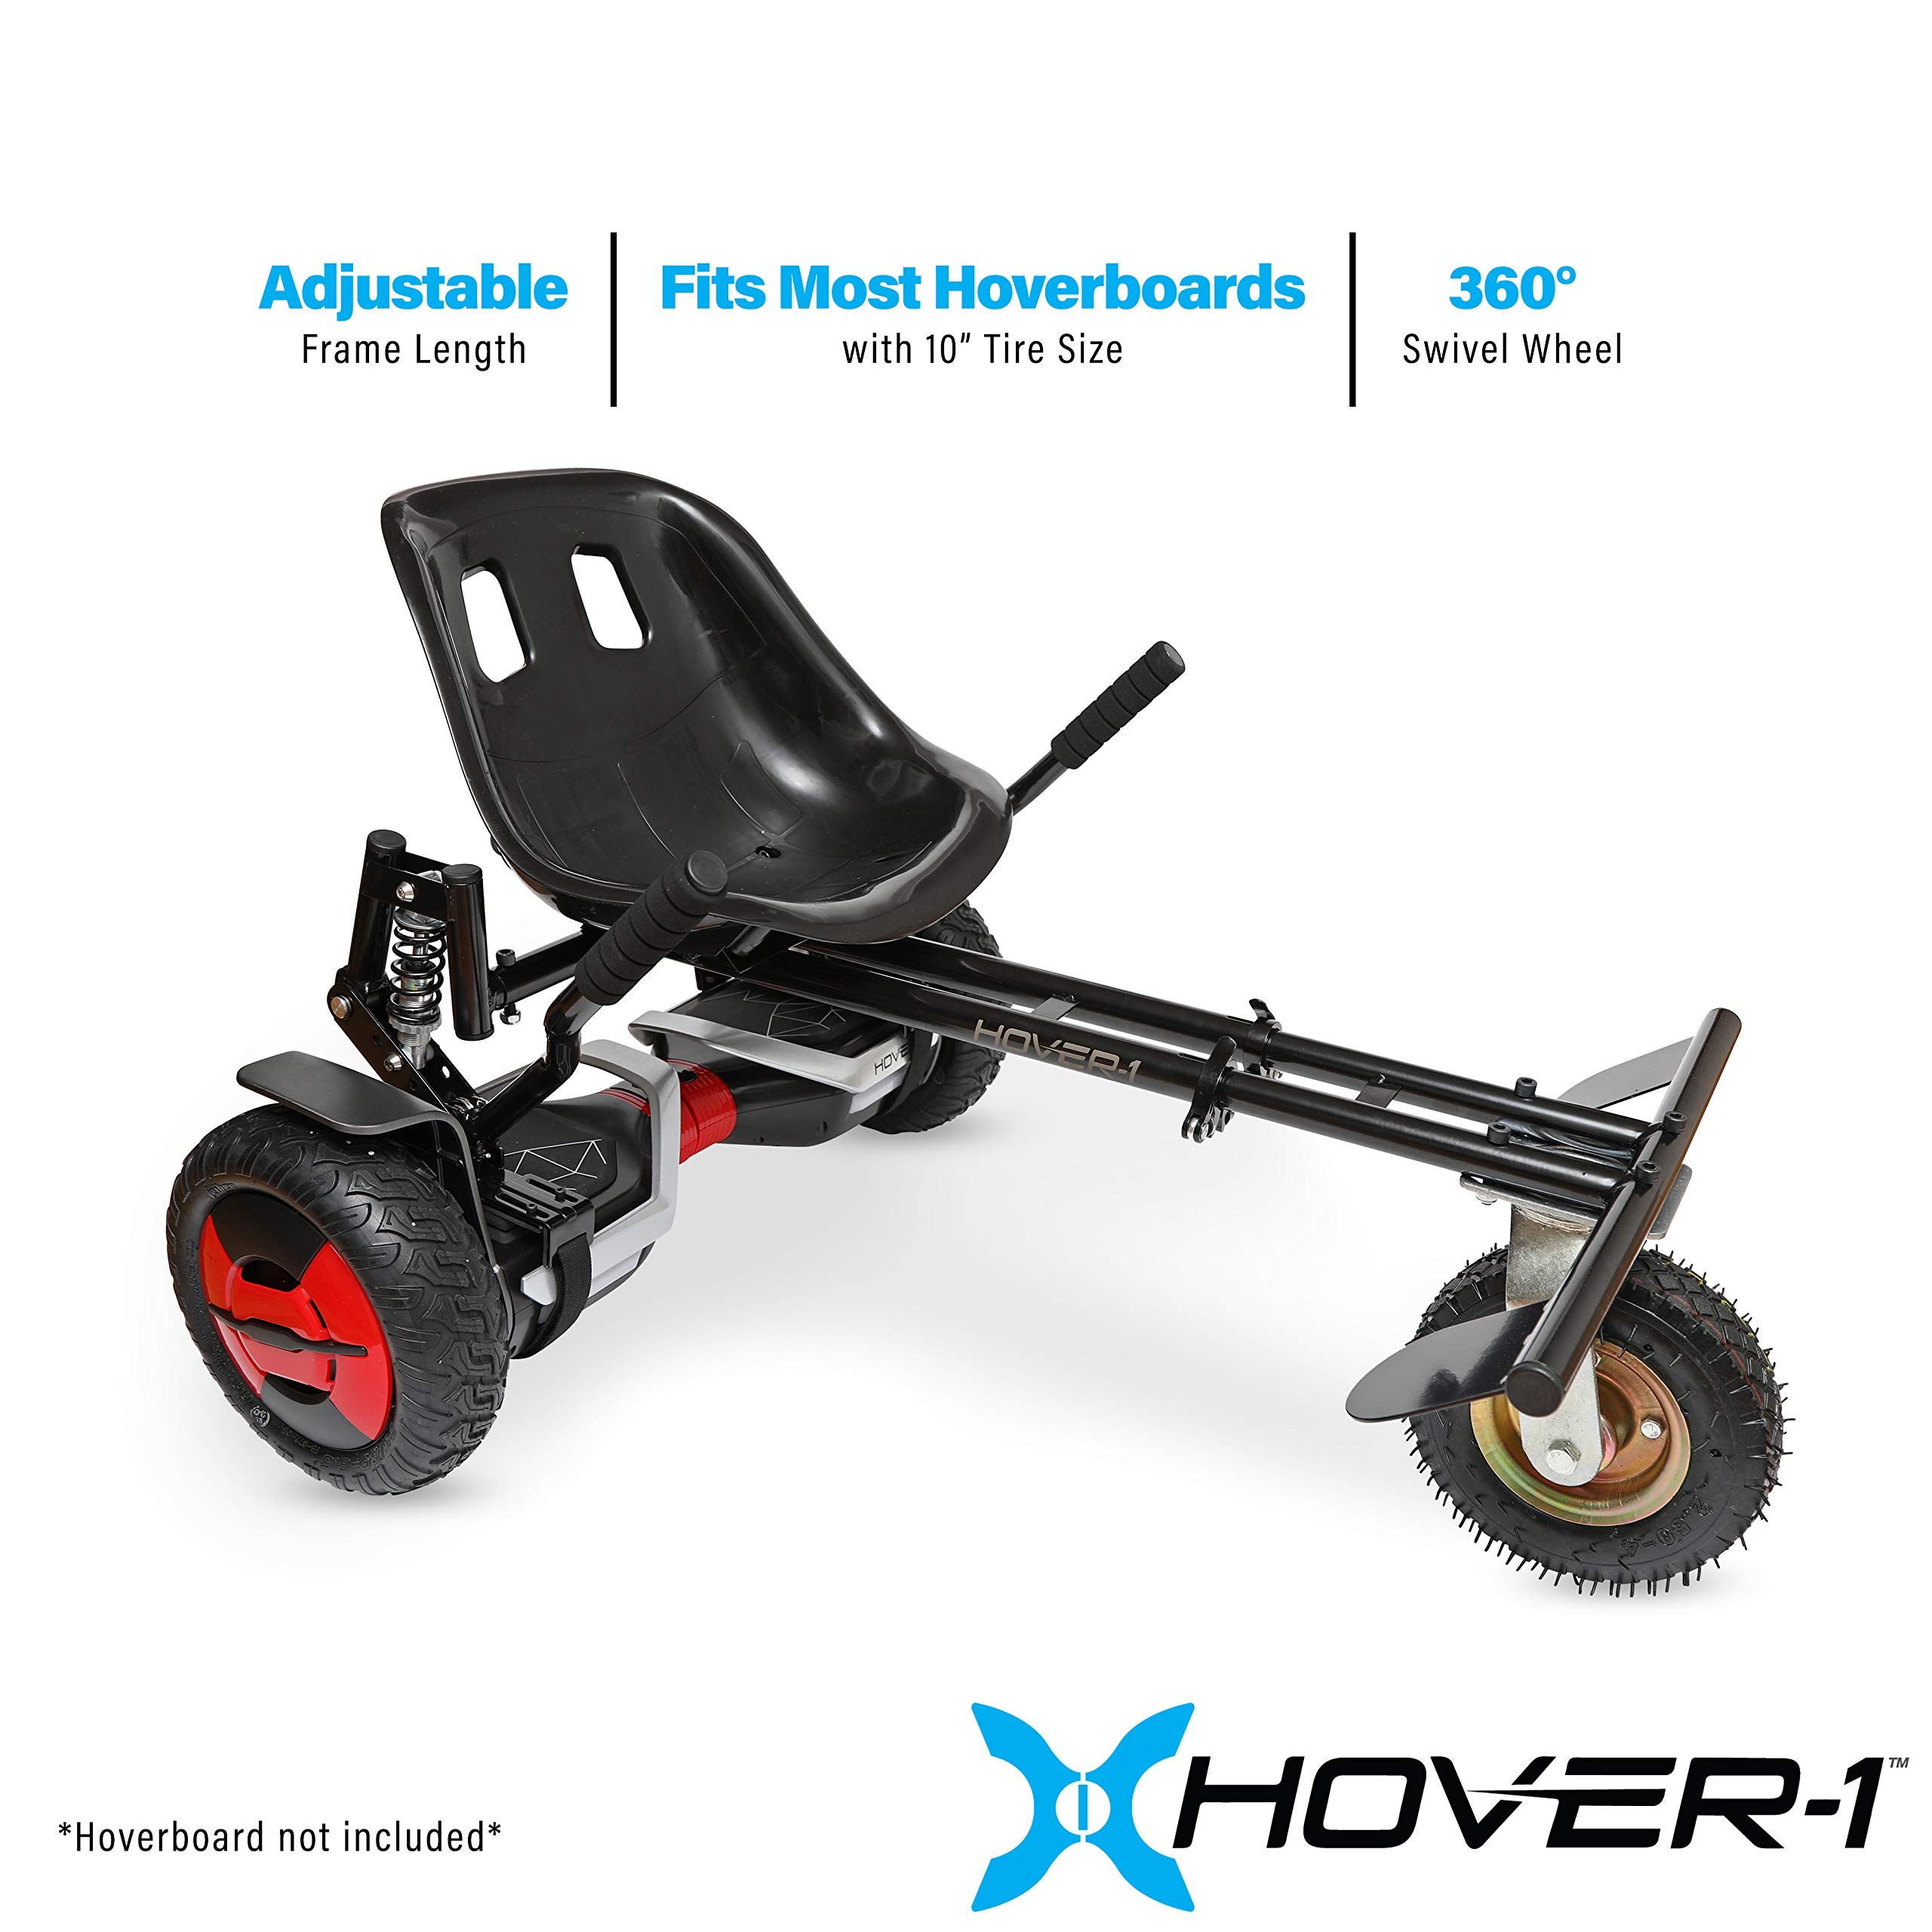 HOVER-1 Beast Buggy Attachment Transform Hoverboard into Off-Road Go-Kart by HOVER-1